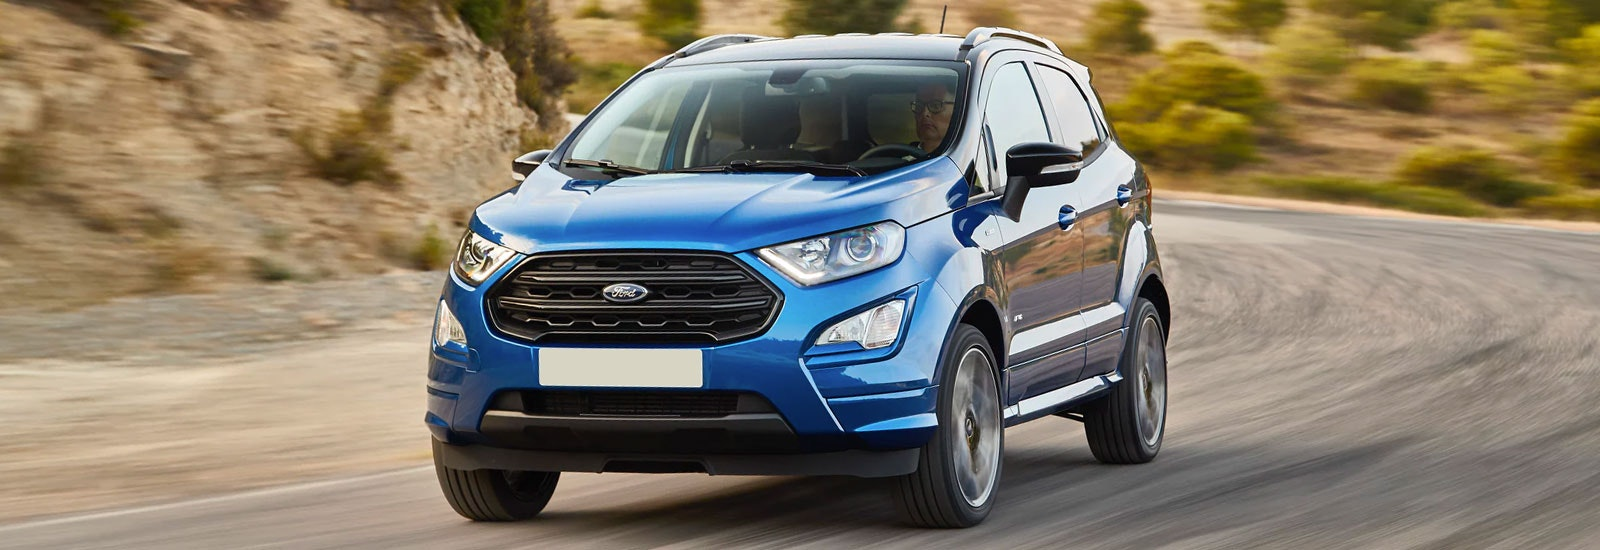 Blue Ford Ecosport driving, viewed from the front